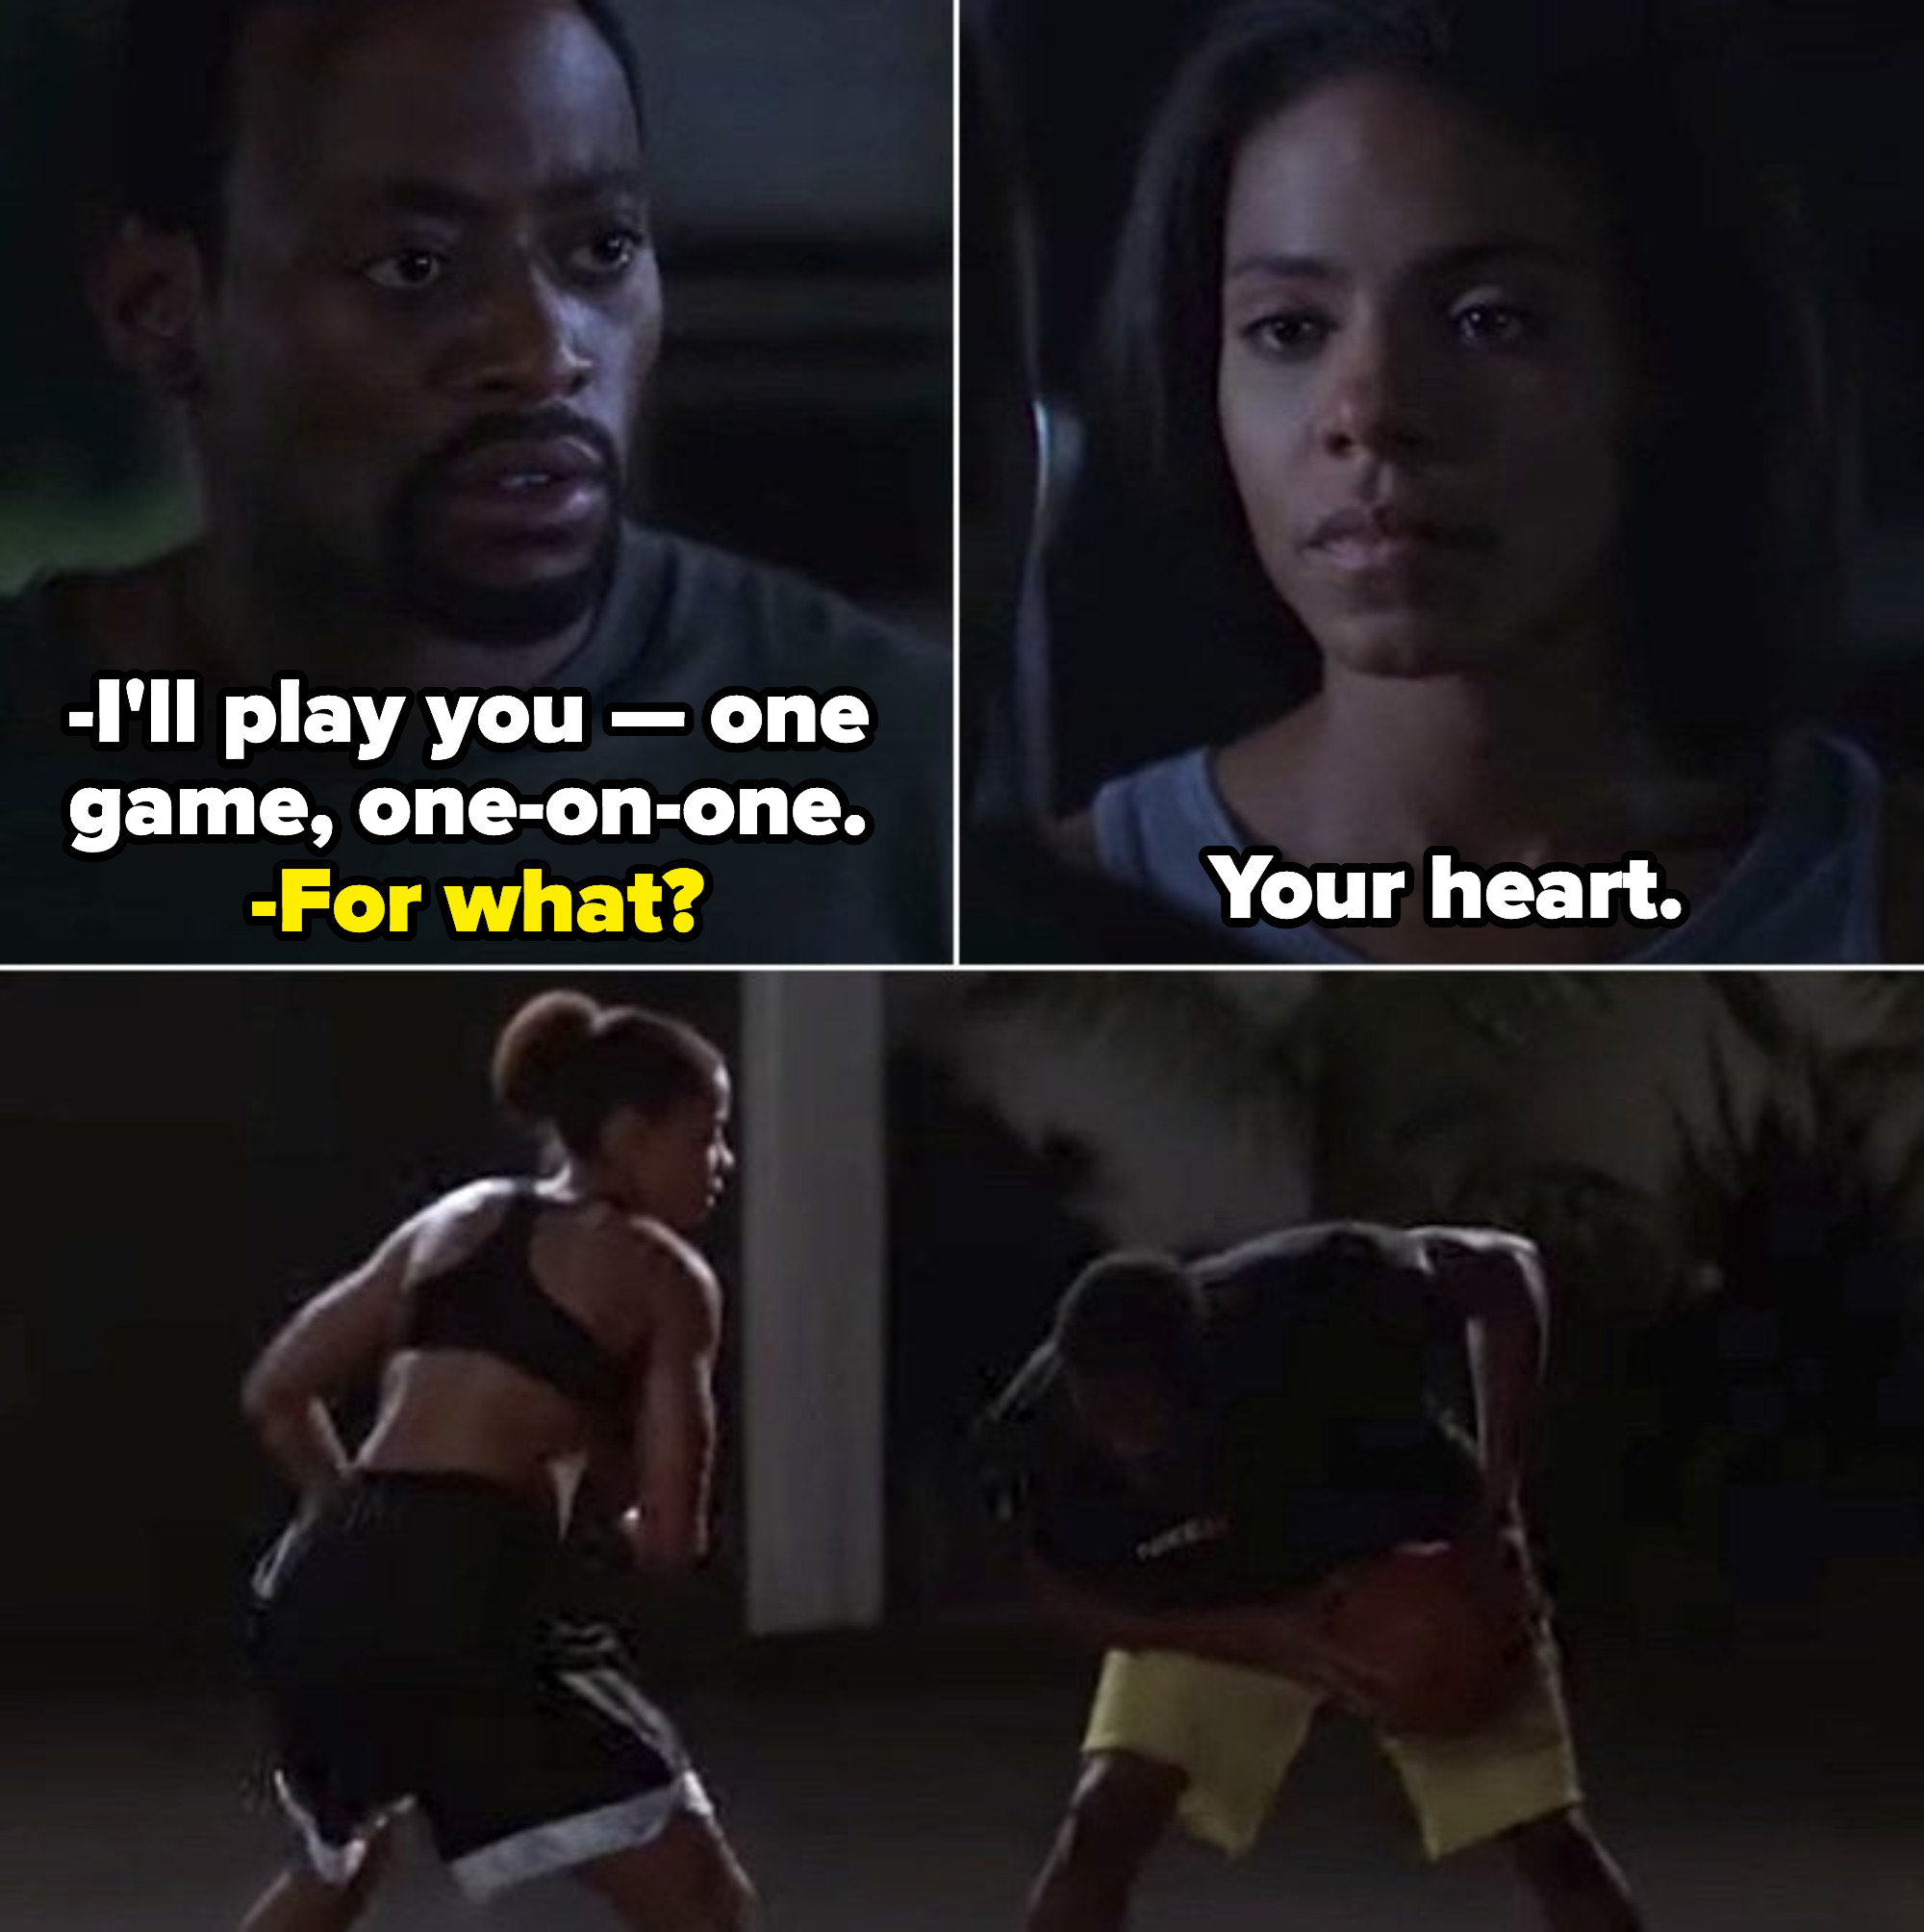 "Monica asking Quincy to play a game of basketball in the middle of the night with love in her eyes: ""I'll play you -- one game, one on one."" Quincy confusingly asks, ""For what?"" and she responds with: ""Your heart."" They play with passion and determination"